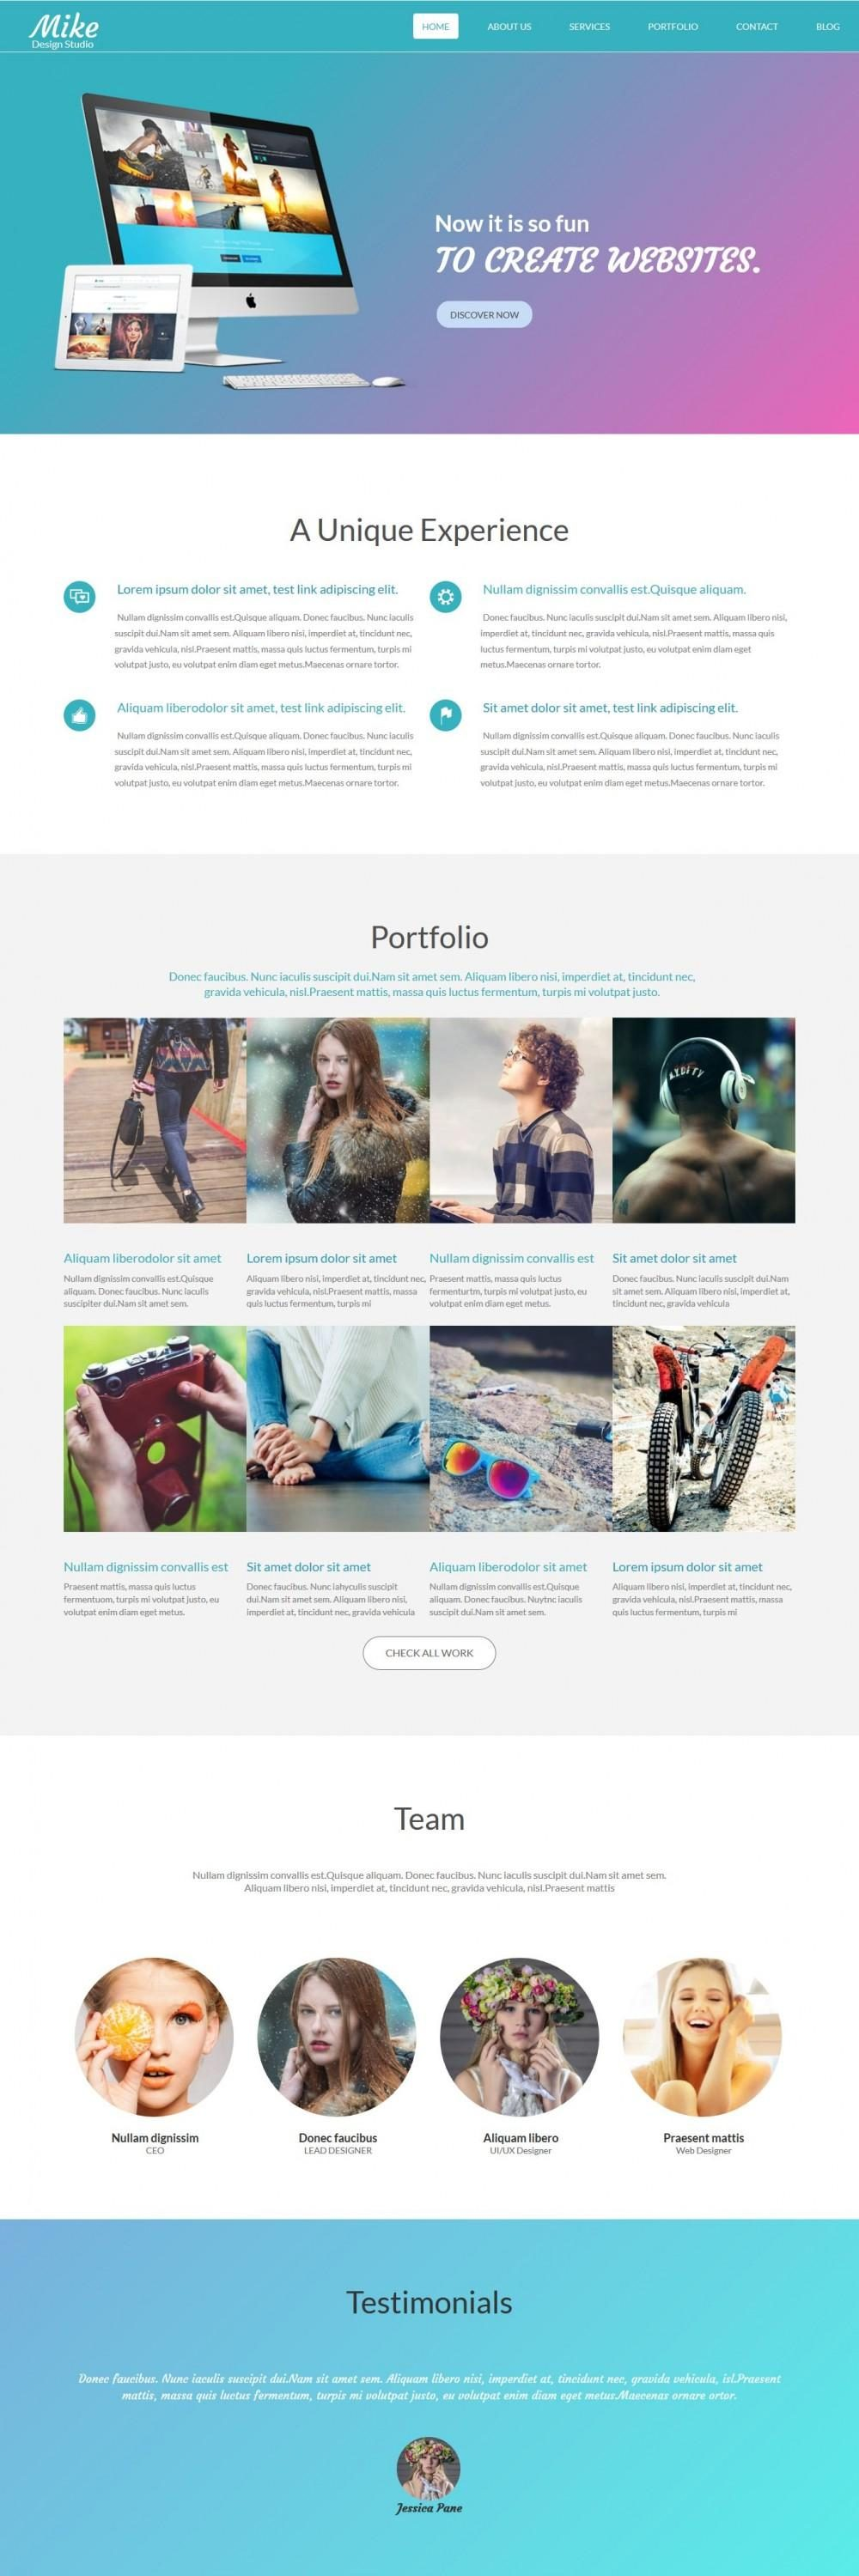 mike web design studio blogger template